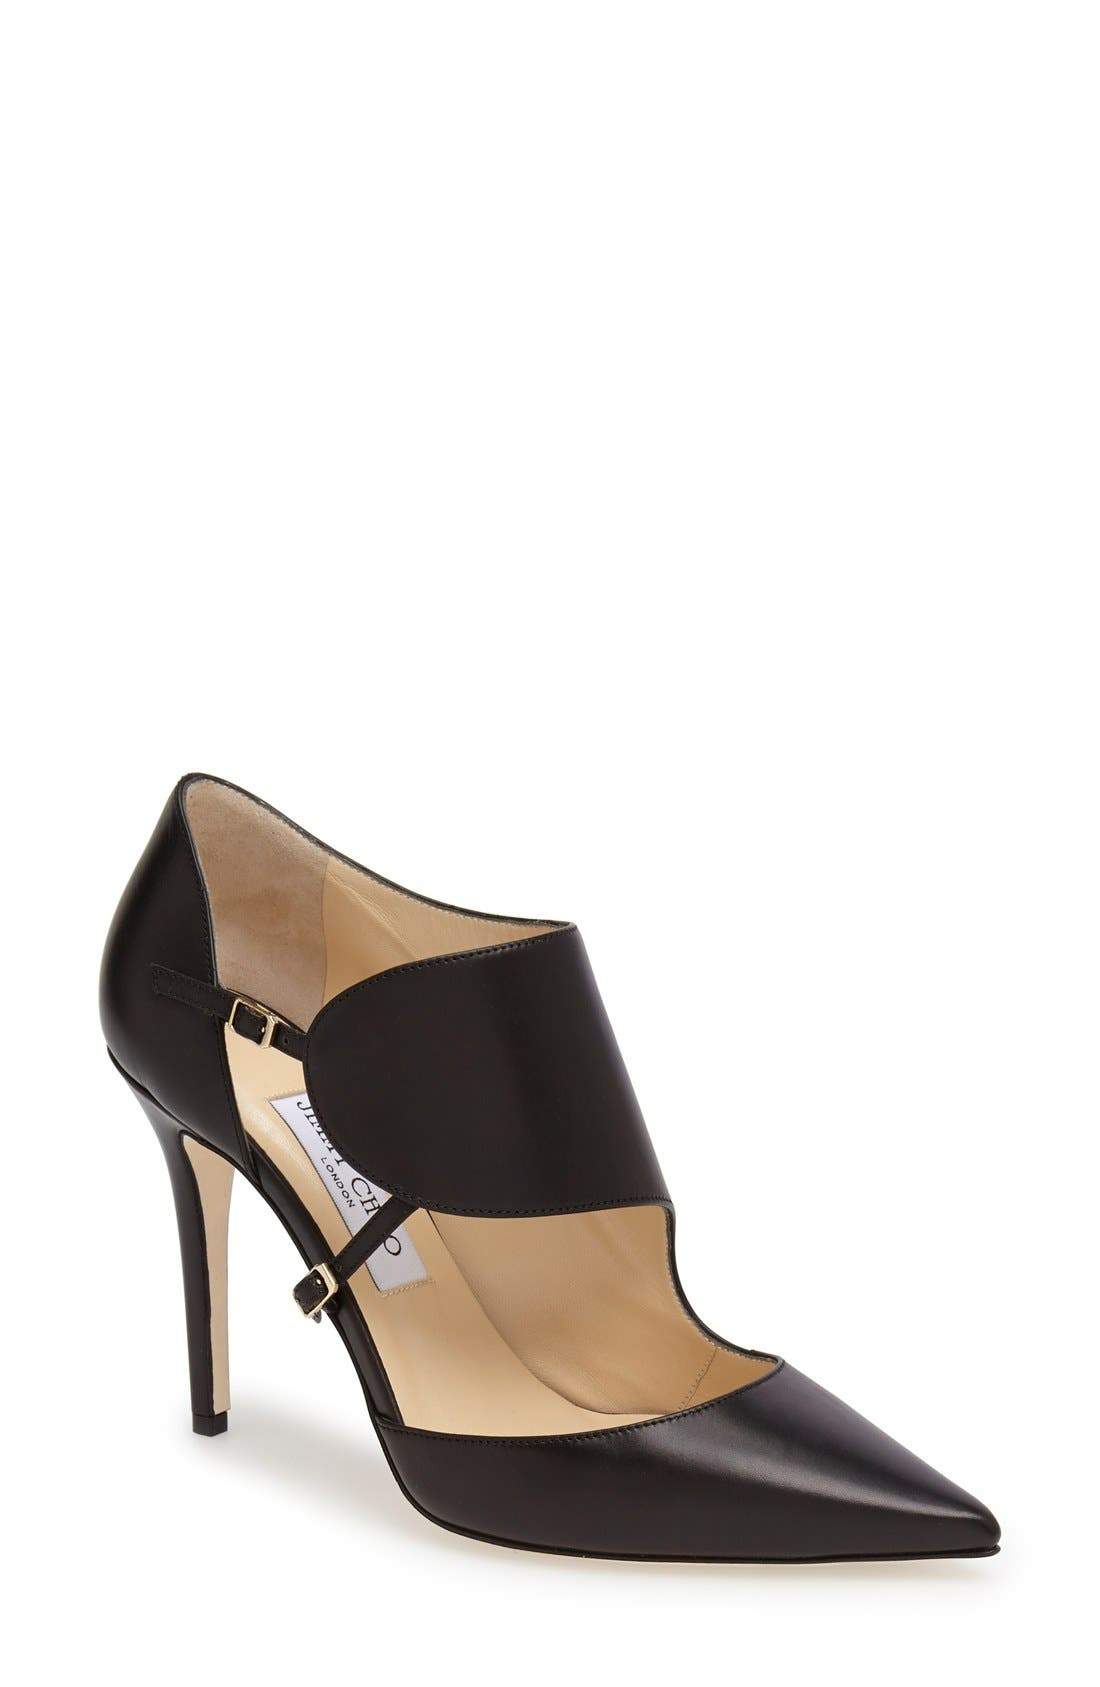 Alternate Image 1 Selected - Jimmy Choo 'Heath' Pointy Toe Leather Pump (Women)